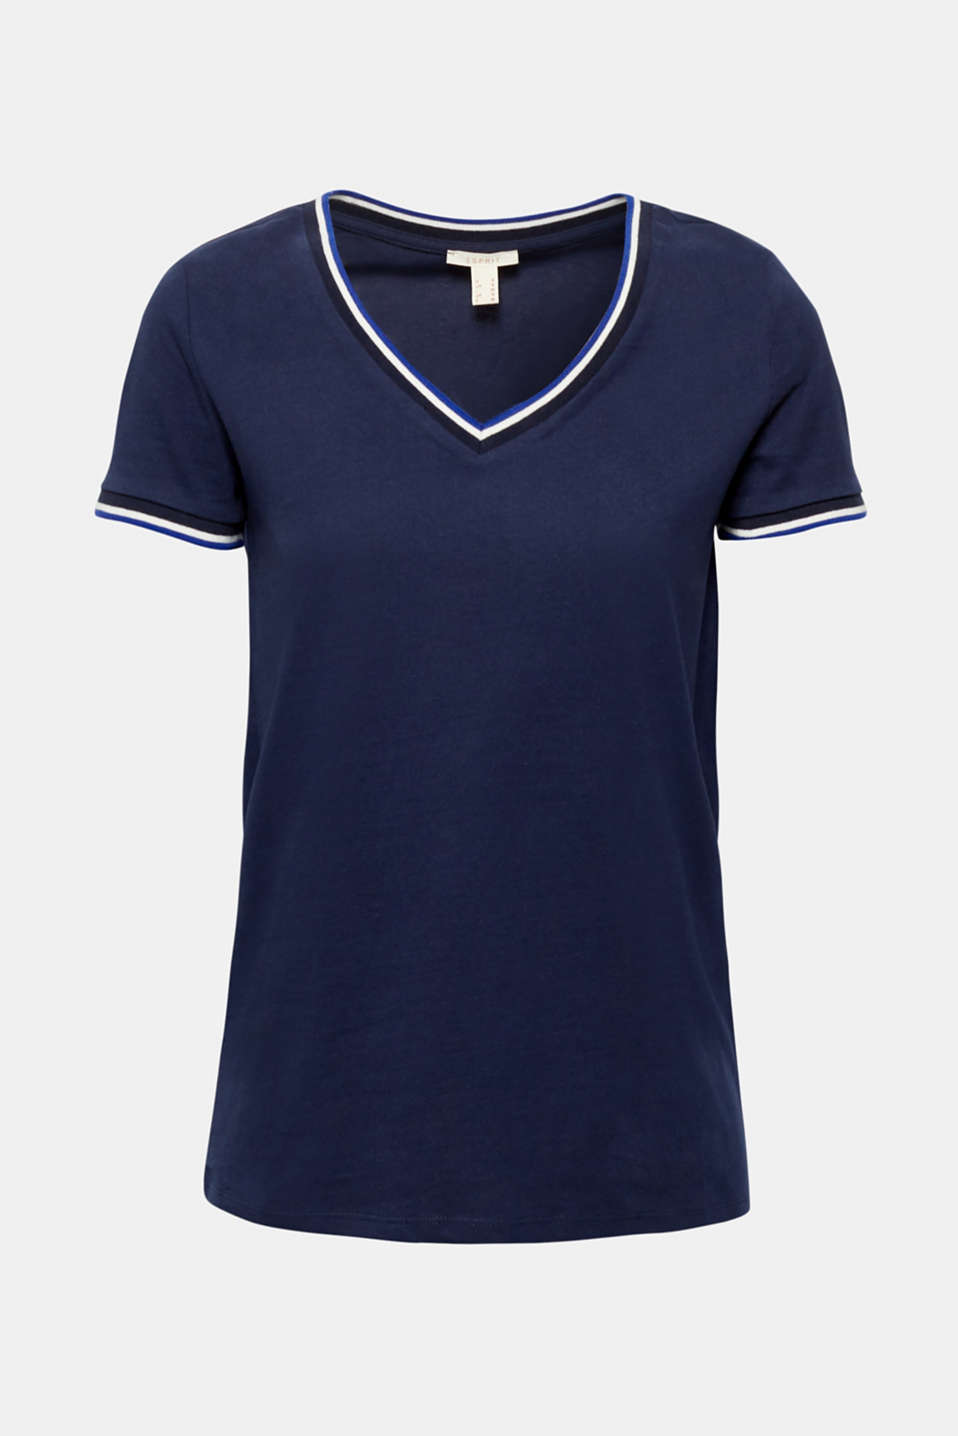 T-shirt with striped trims, 100% cotton, NAVY, detail image number 6